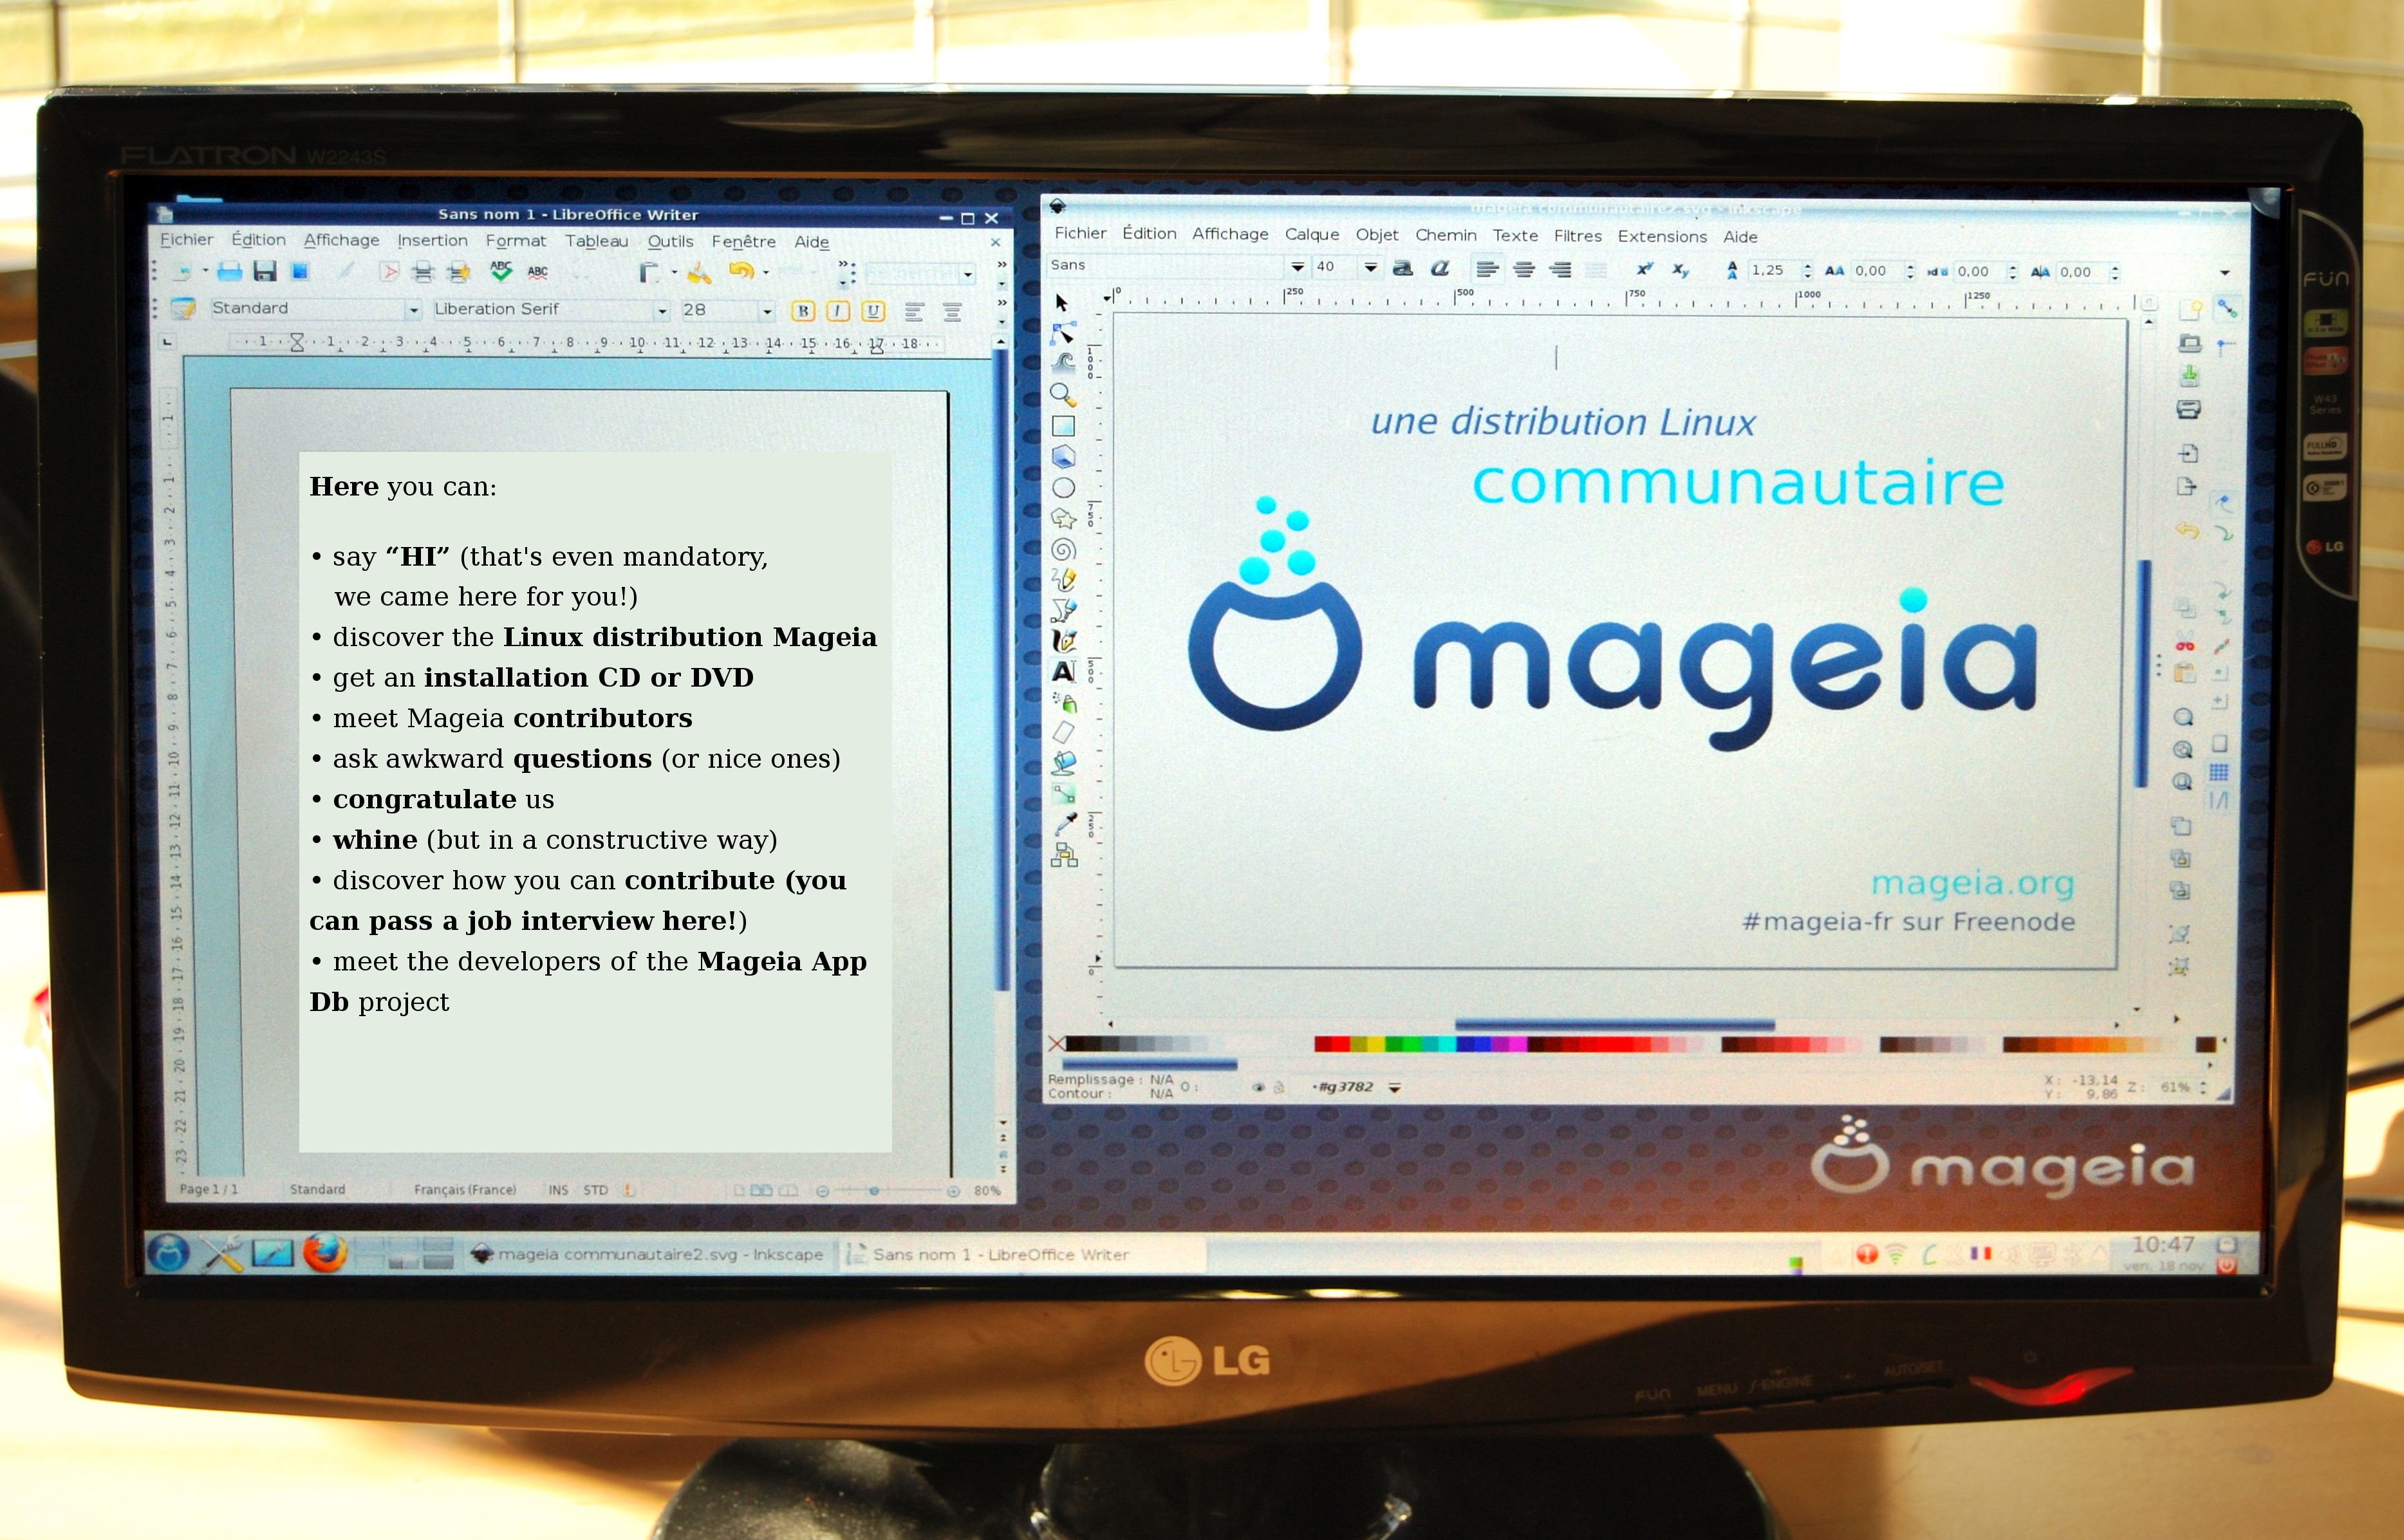 Mageia screenshot with information